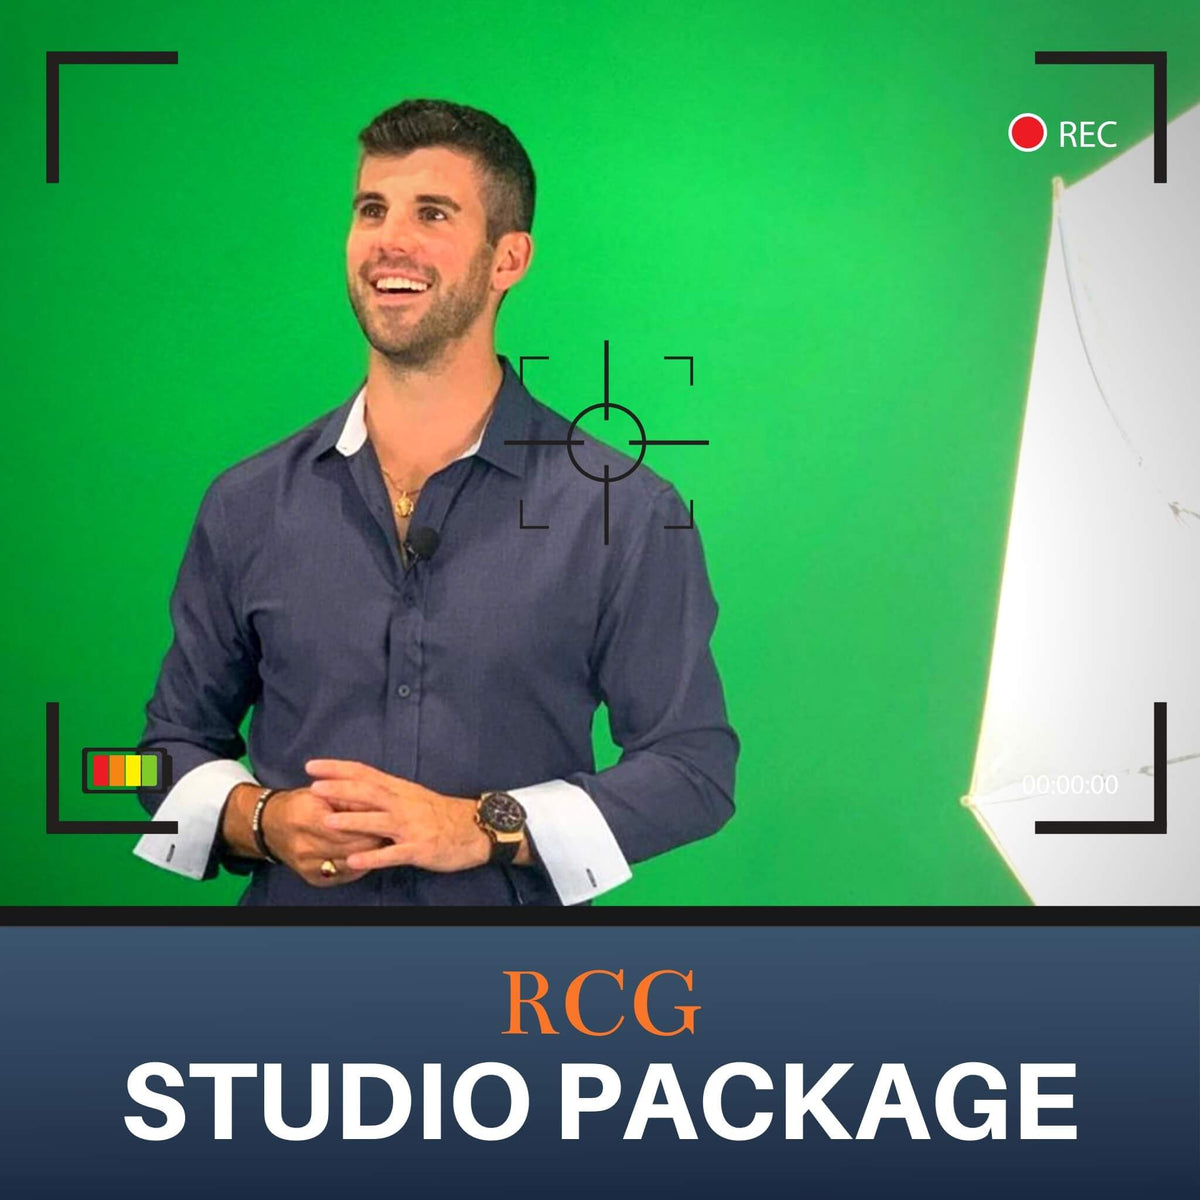 RCG Studio Package: Request A Quote